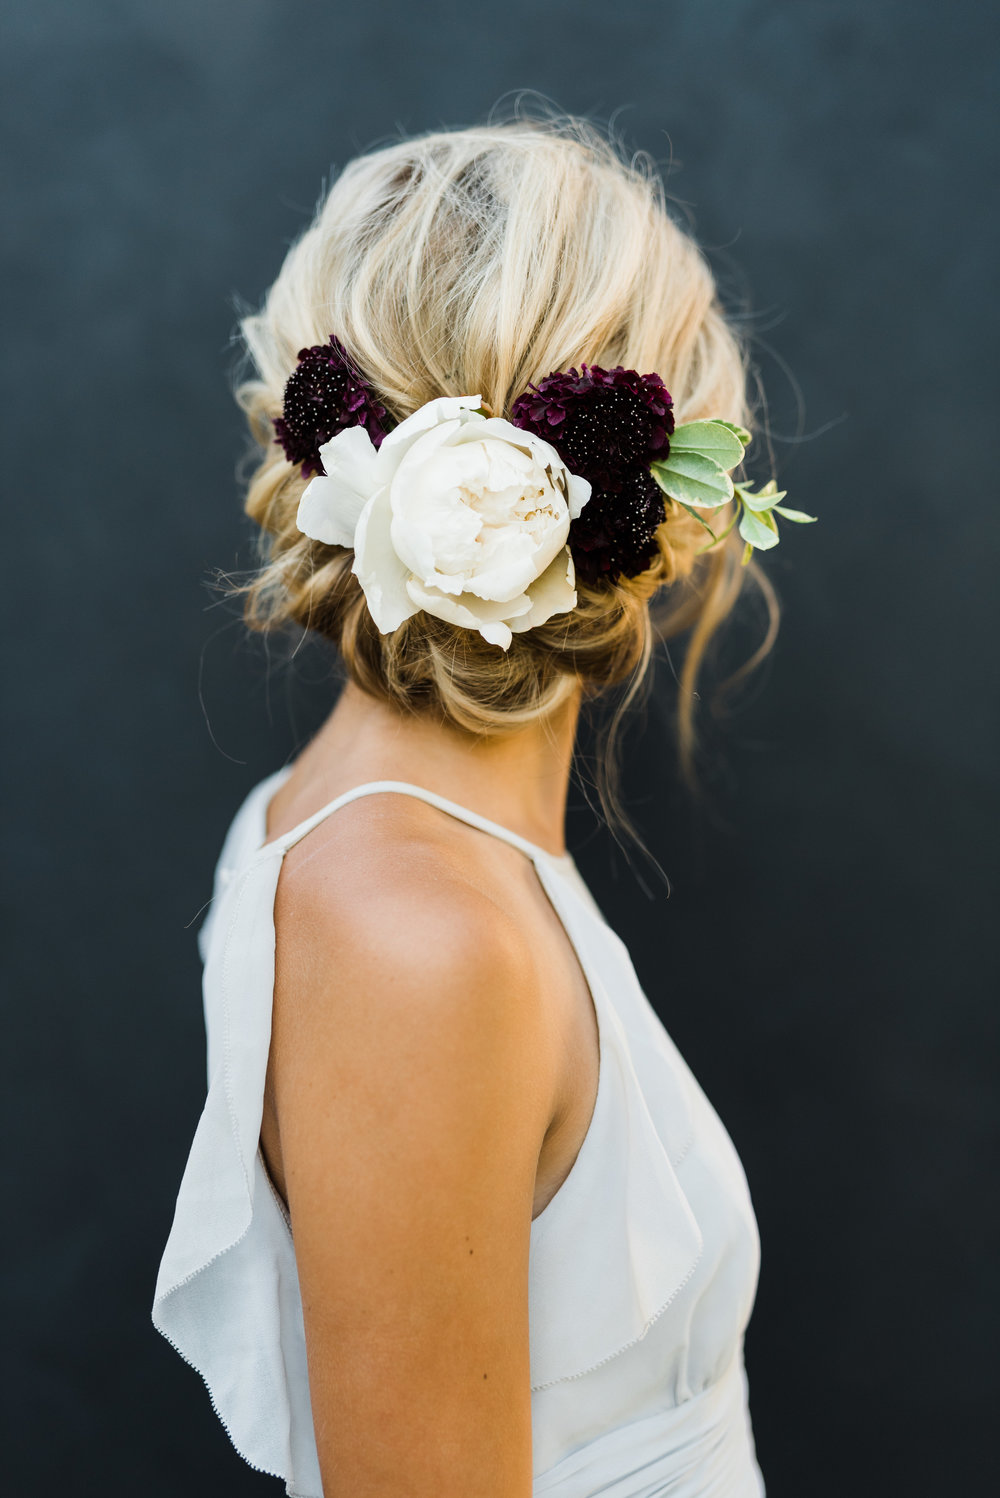 dark and moody floral hair style, Angela Nunnink photography, Angela Nunnink Hair and makeup, Mastin labs, Italy wedding, Scotland wedding, editorial